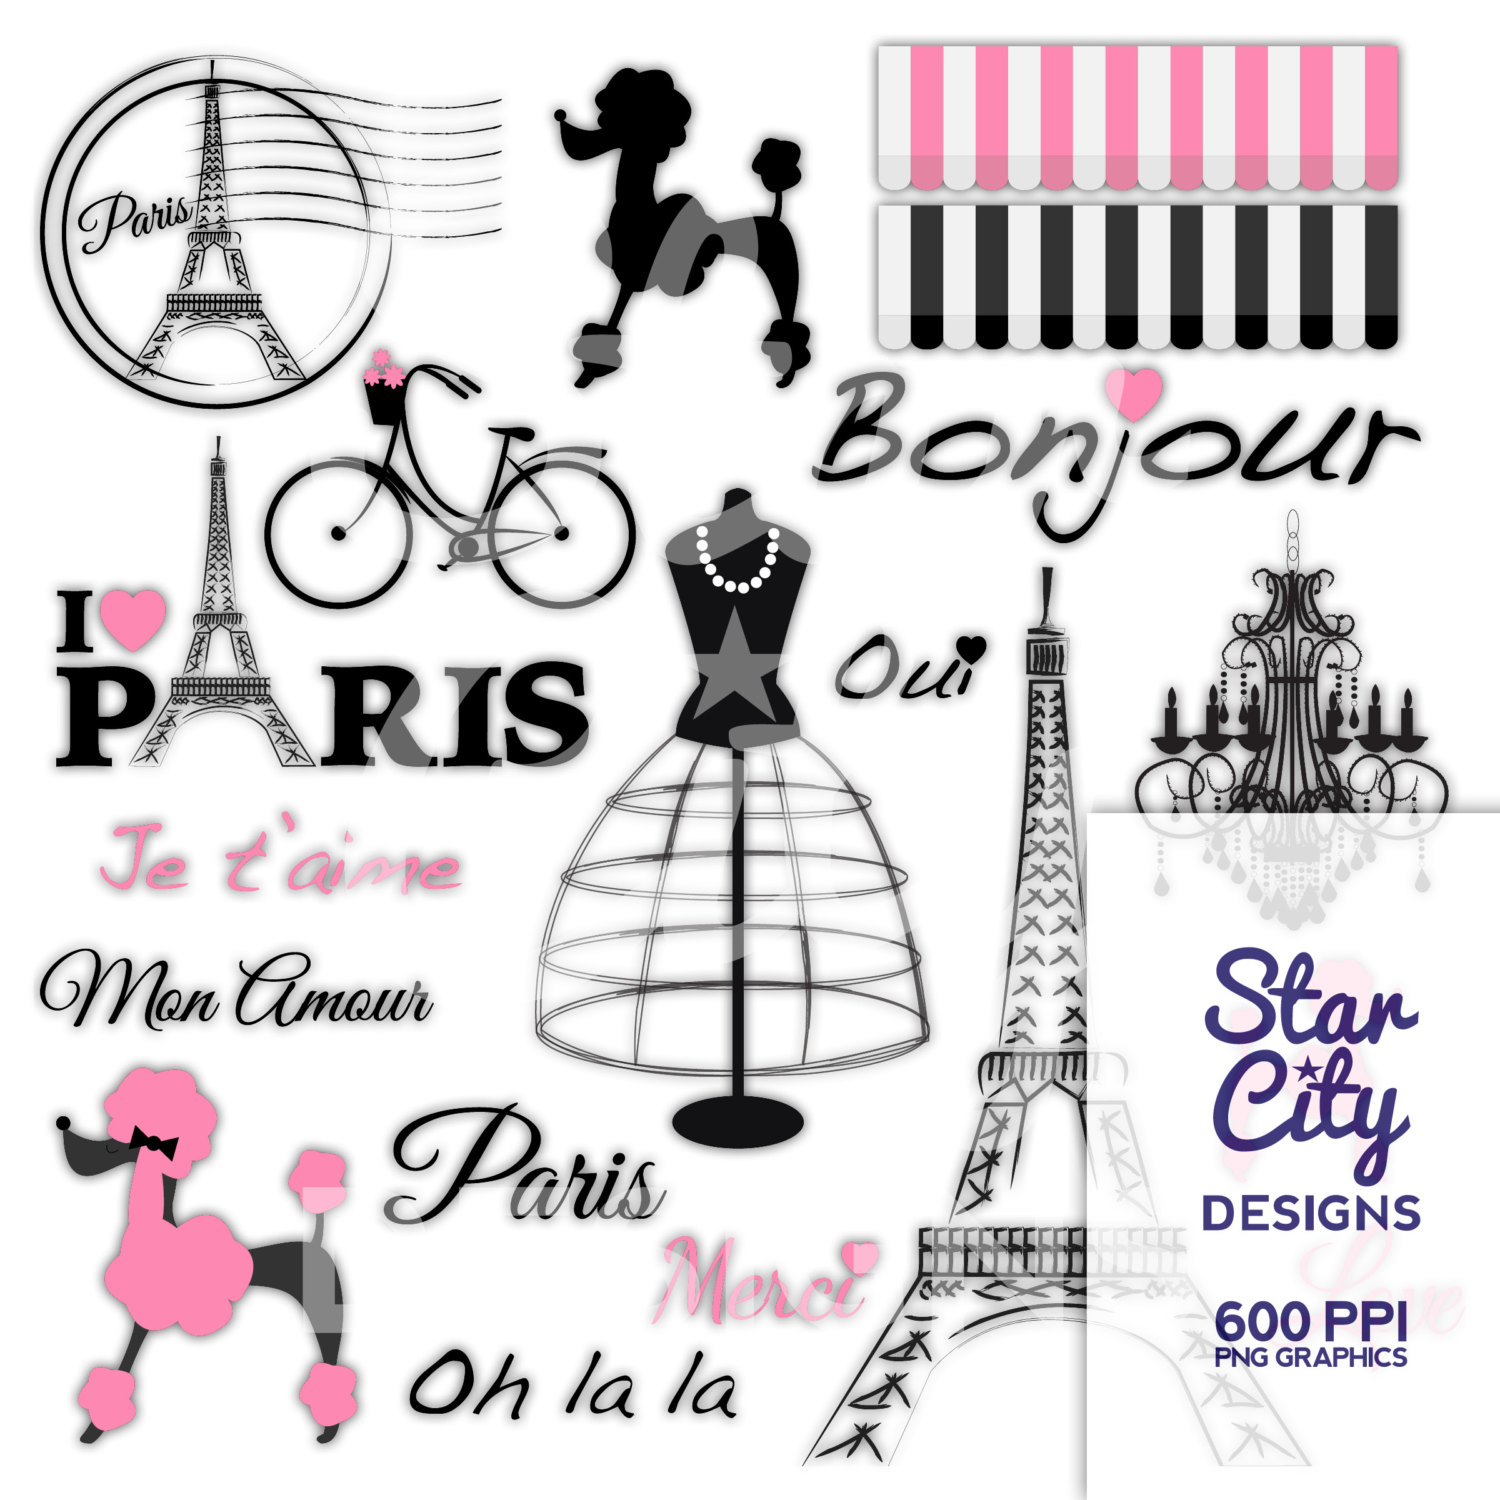 Paris Clipart, Paris poodle clipart, cli-Paris Clipart, Paris poodle clipart, clipart, clip art, digital graphics, instant download, chandelier clipart, bike clipart, pink paris art-6